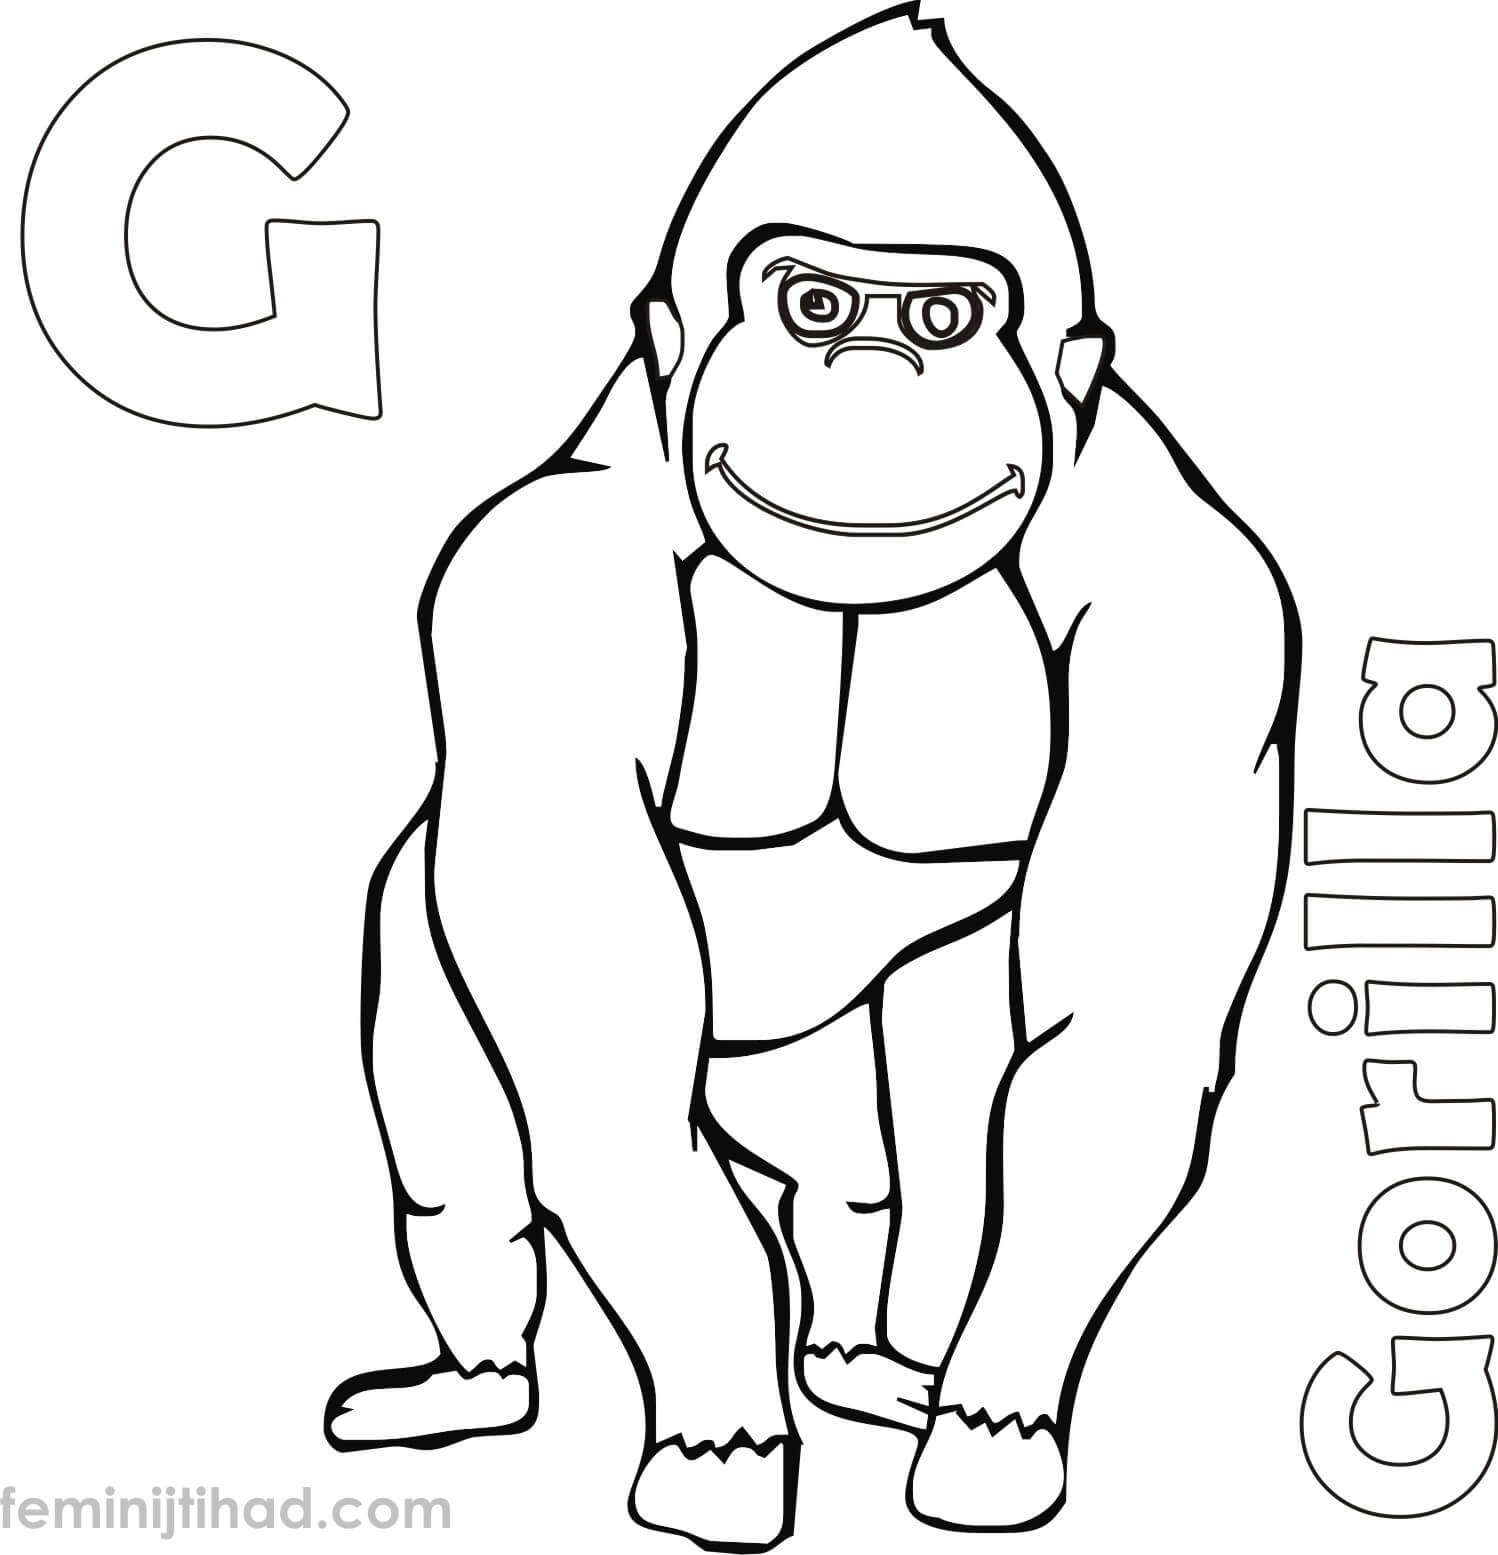 1498x1555 Cool Gorilla Coloring Pictures Silverback Page Free Pages